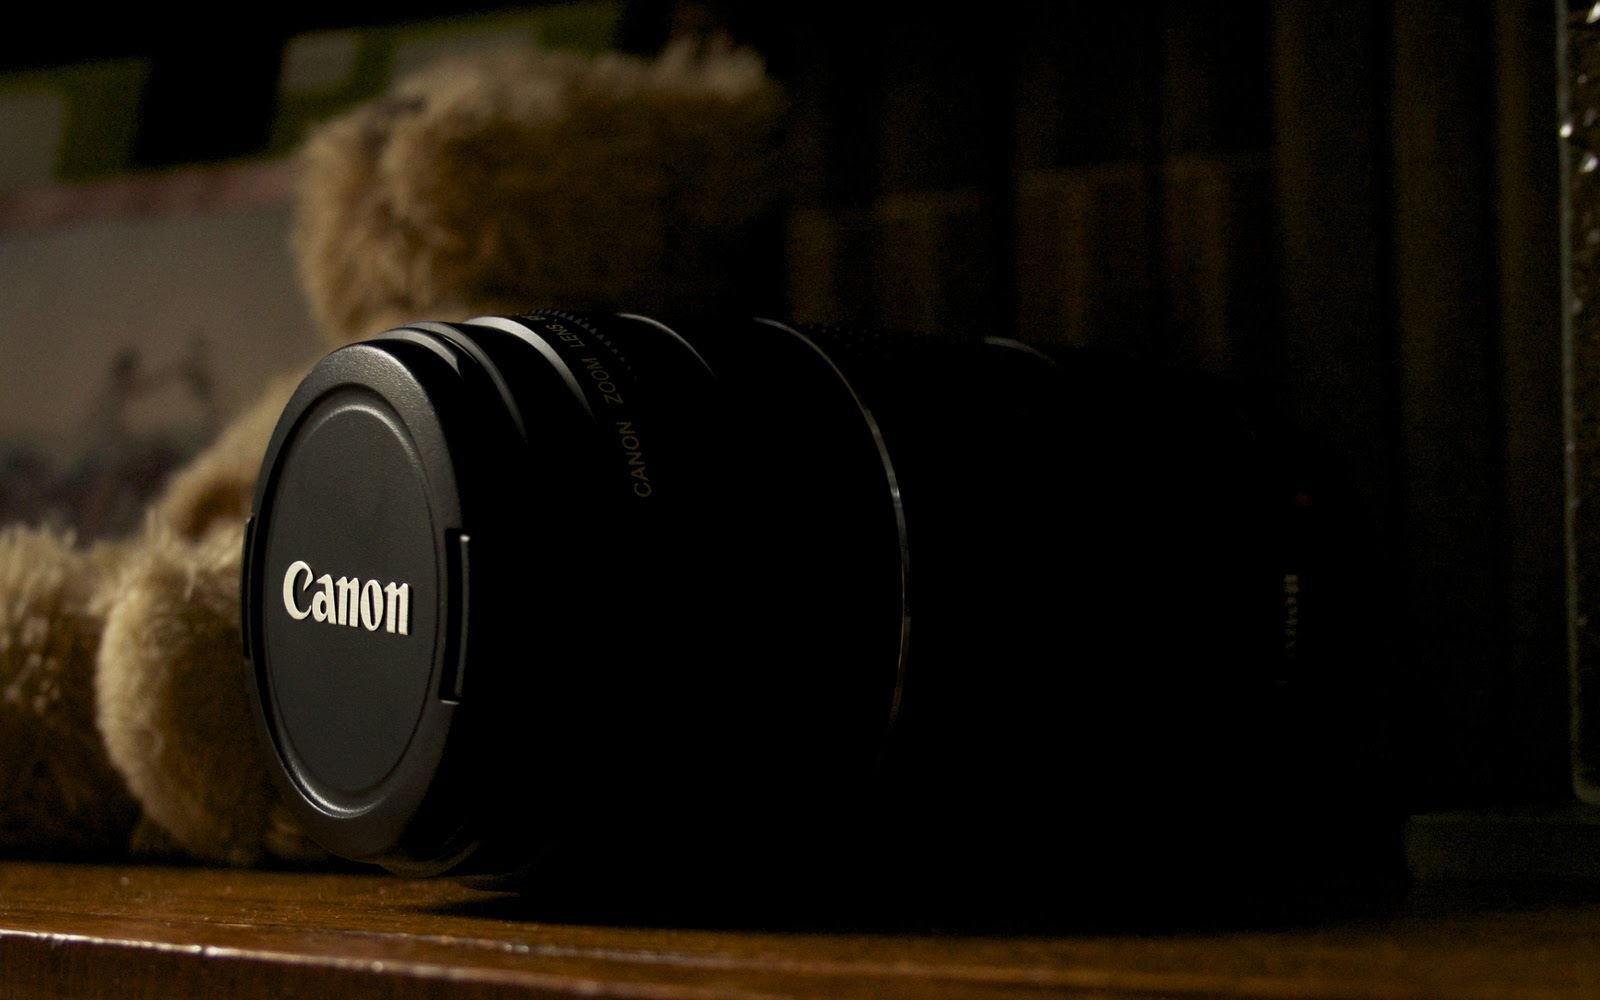 Canon Camera Wallpaper